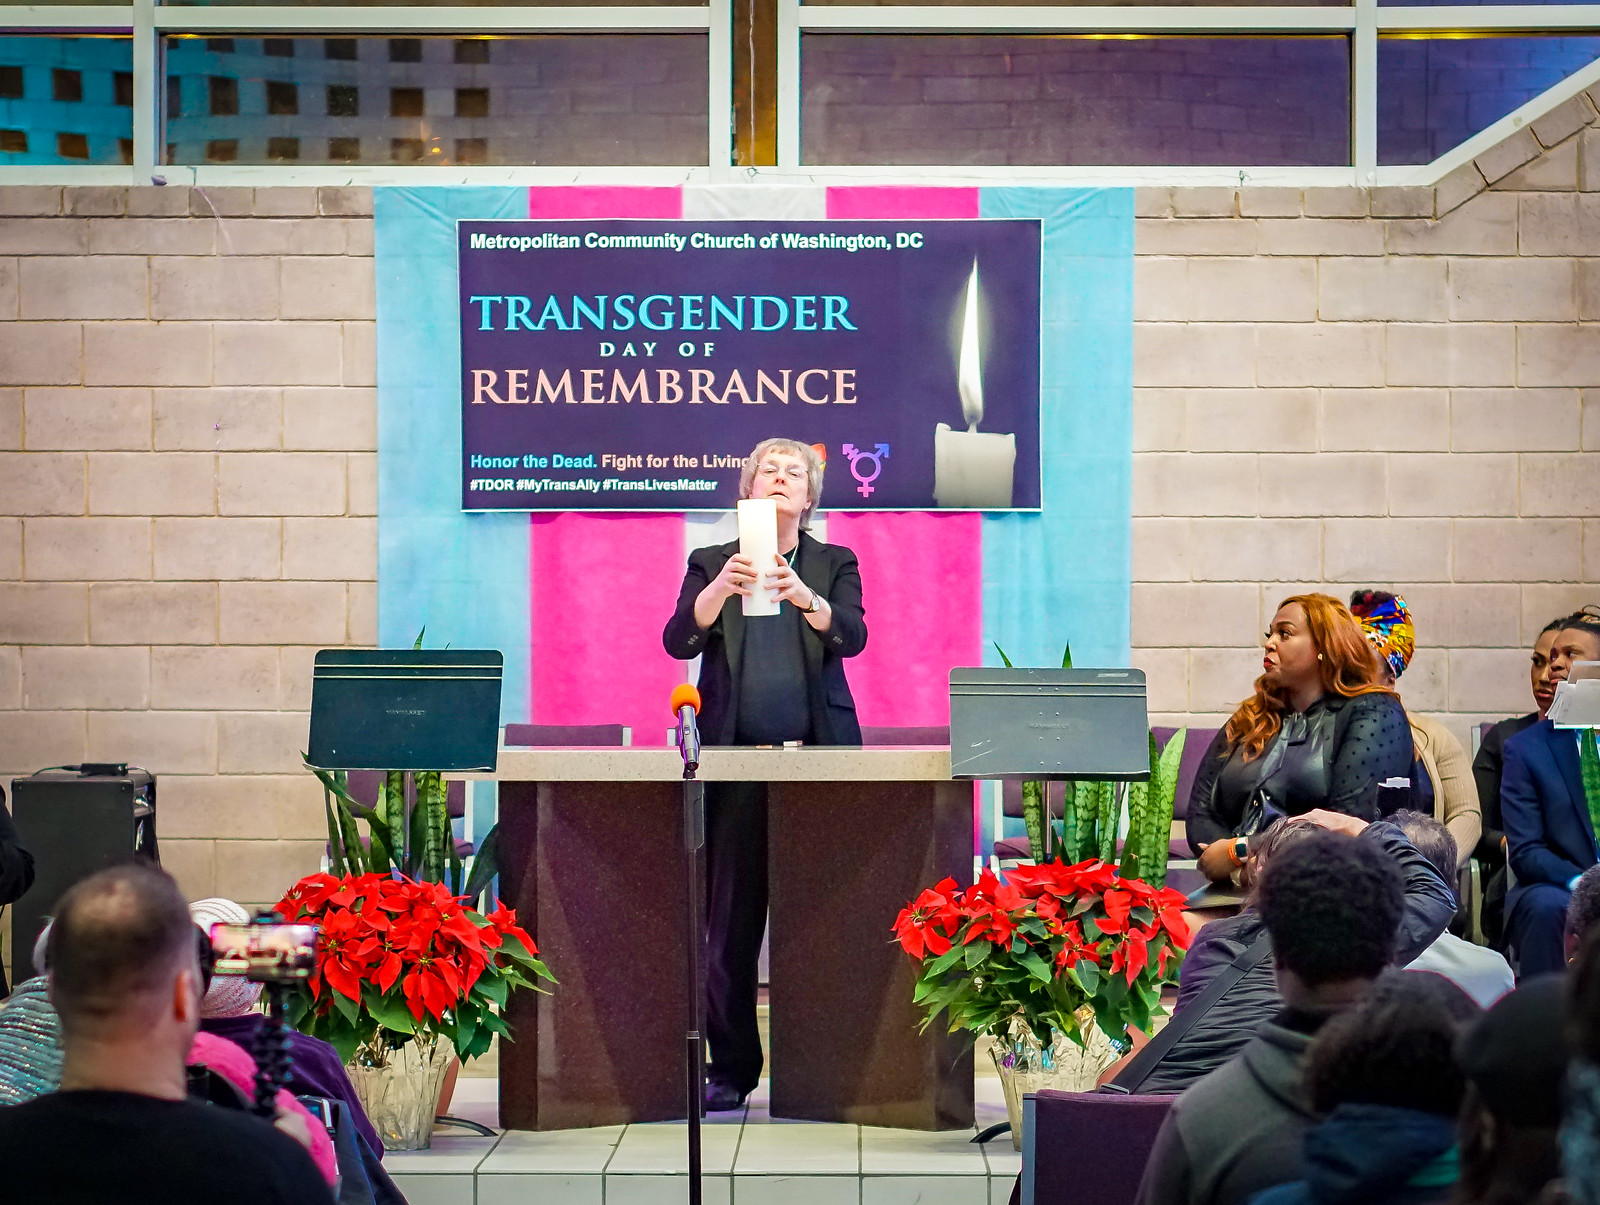 2019.11.20 Transgender Day of Remembrance, Washington, DC USA 324 28210